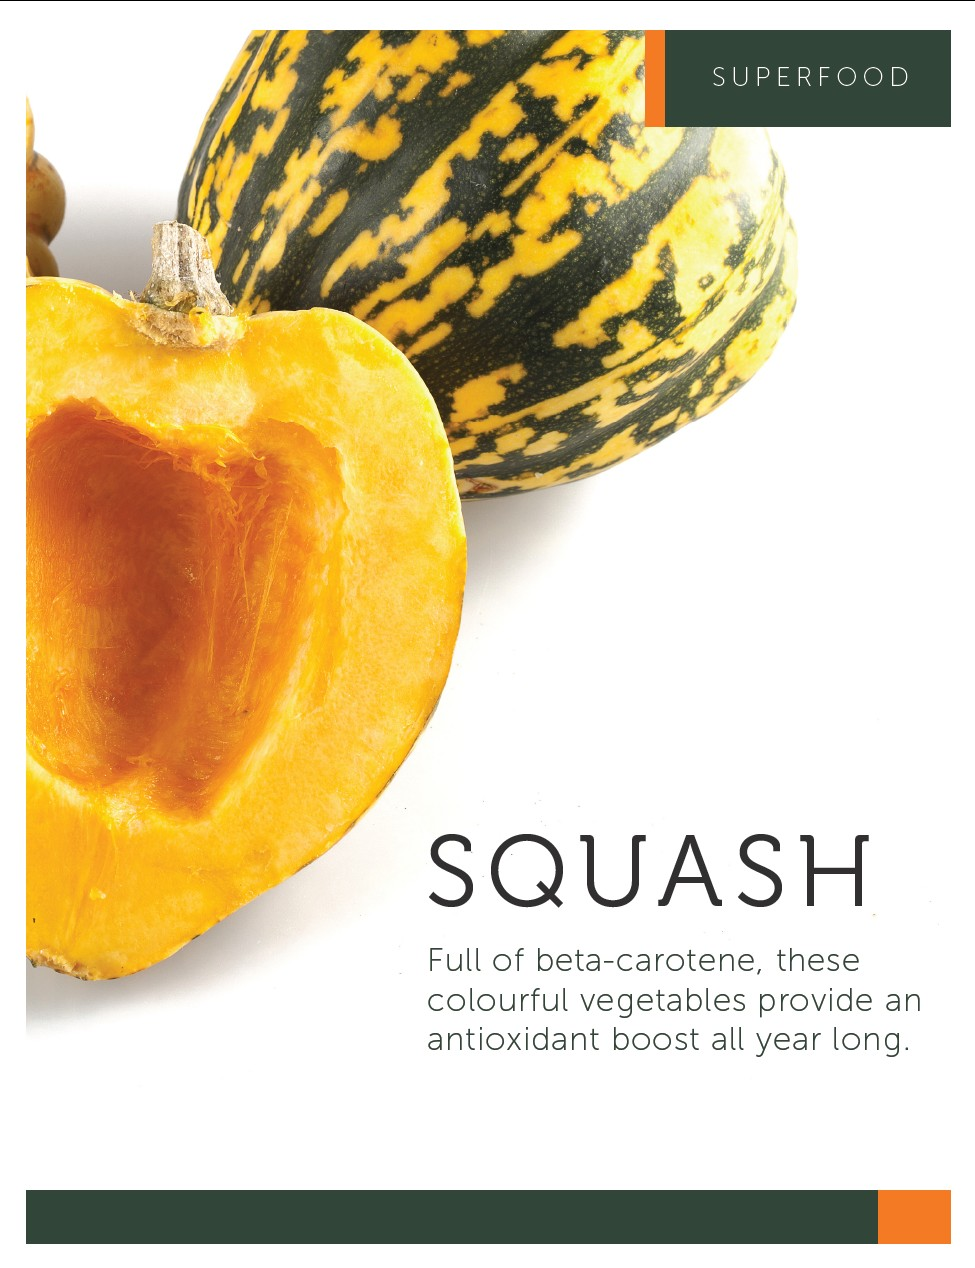 Superfood of the Month: Squash